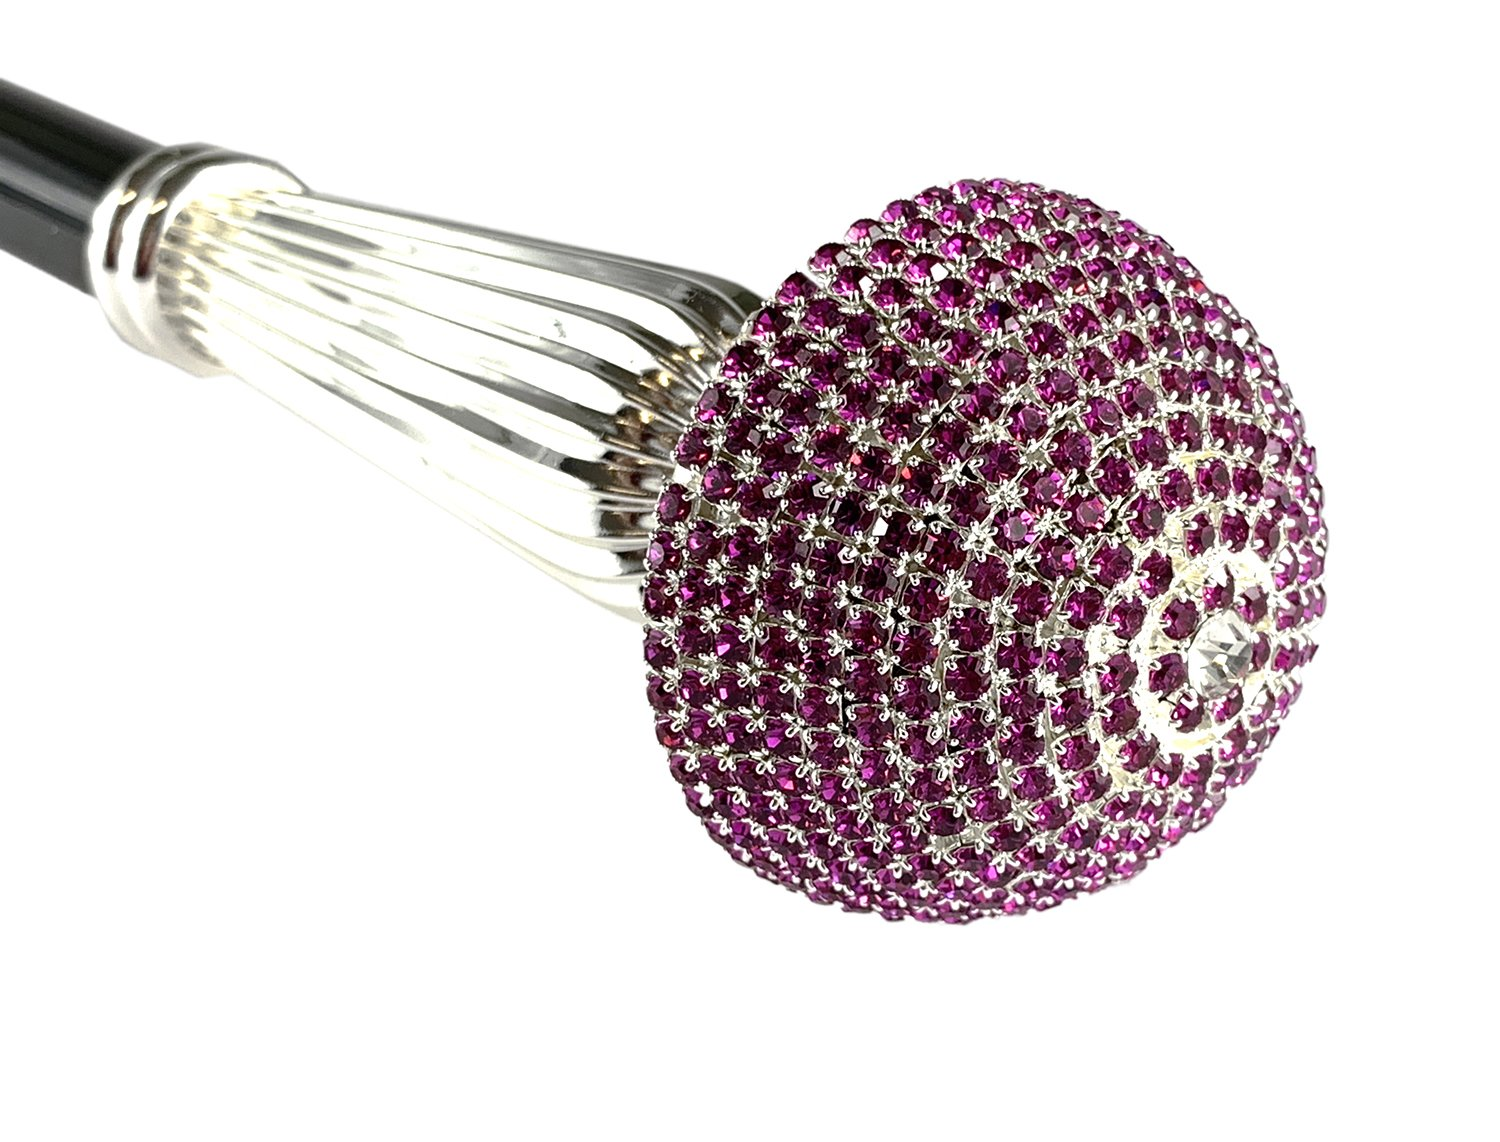 Luxurious Collectible Walking Stick - Fuchsia Crystals - IL MARCHESATO LUXURY UMBRELLAS, CANES AND SHOEHORNS